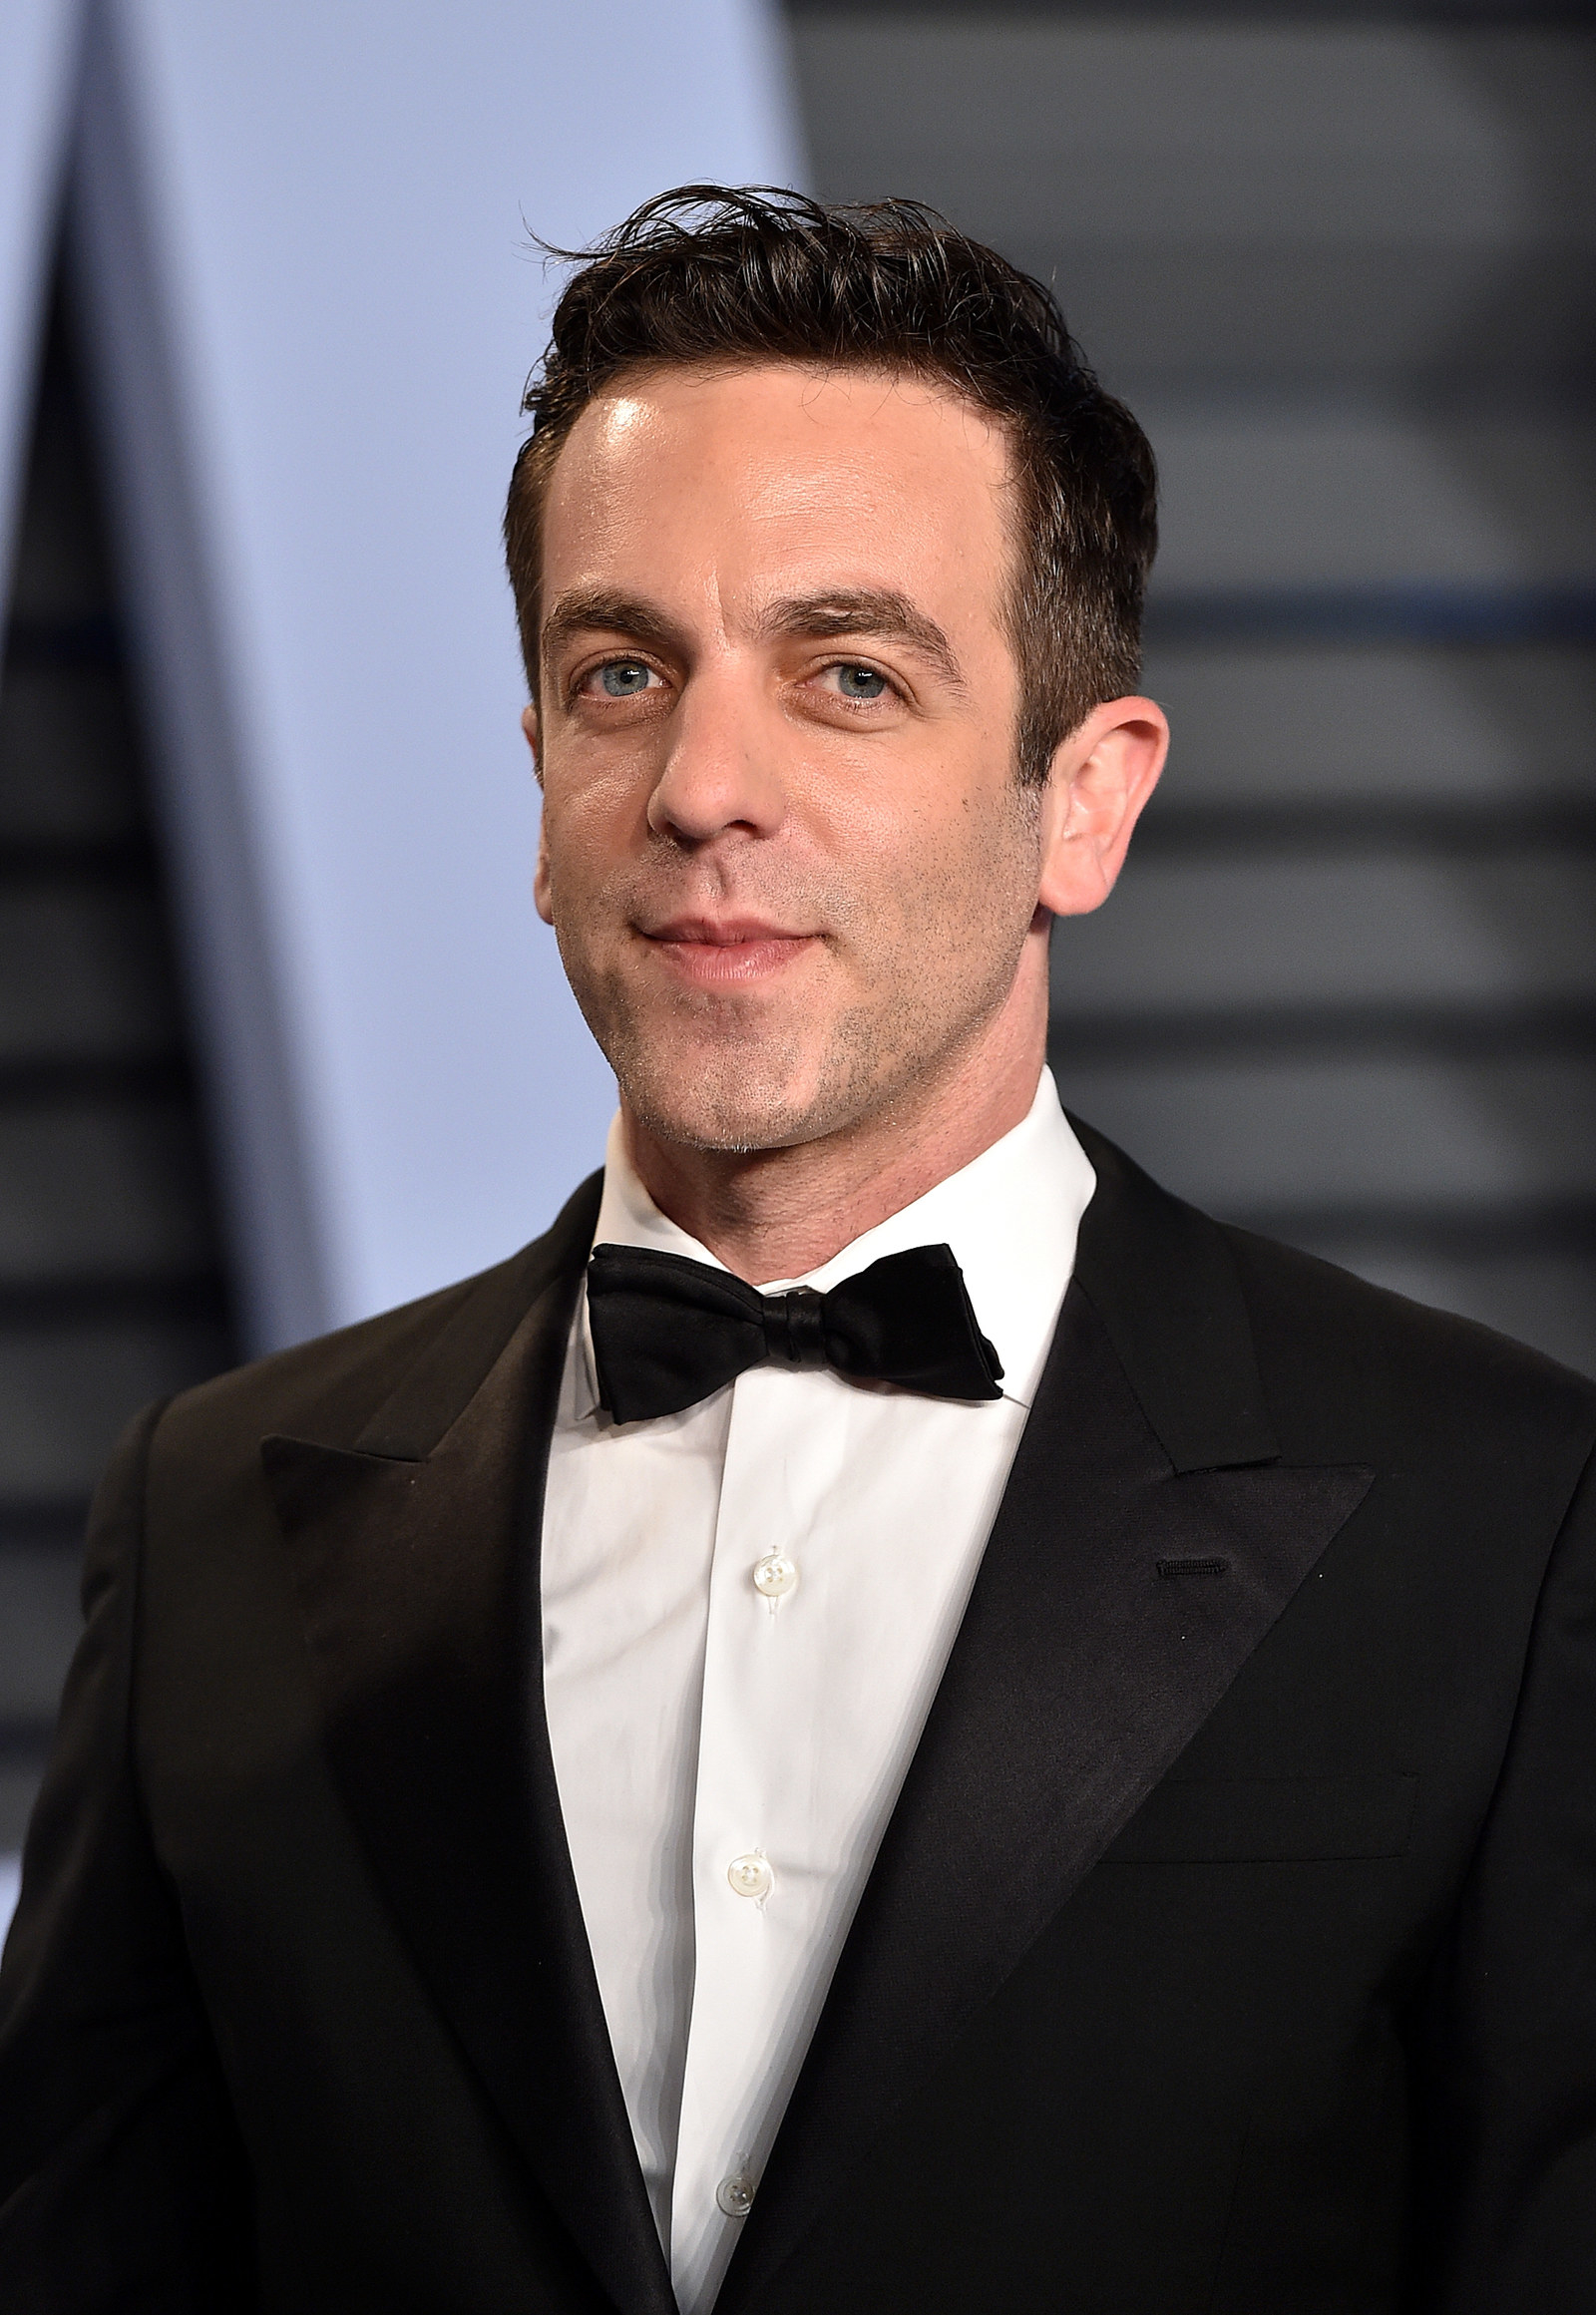 B.J. Novak and John Krasinski -  The  Office  alums  went  to the same high school at the same time: Newton South High School in Newton, Massachusetts.